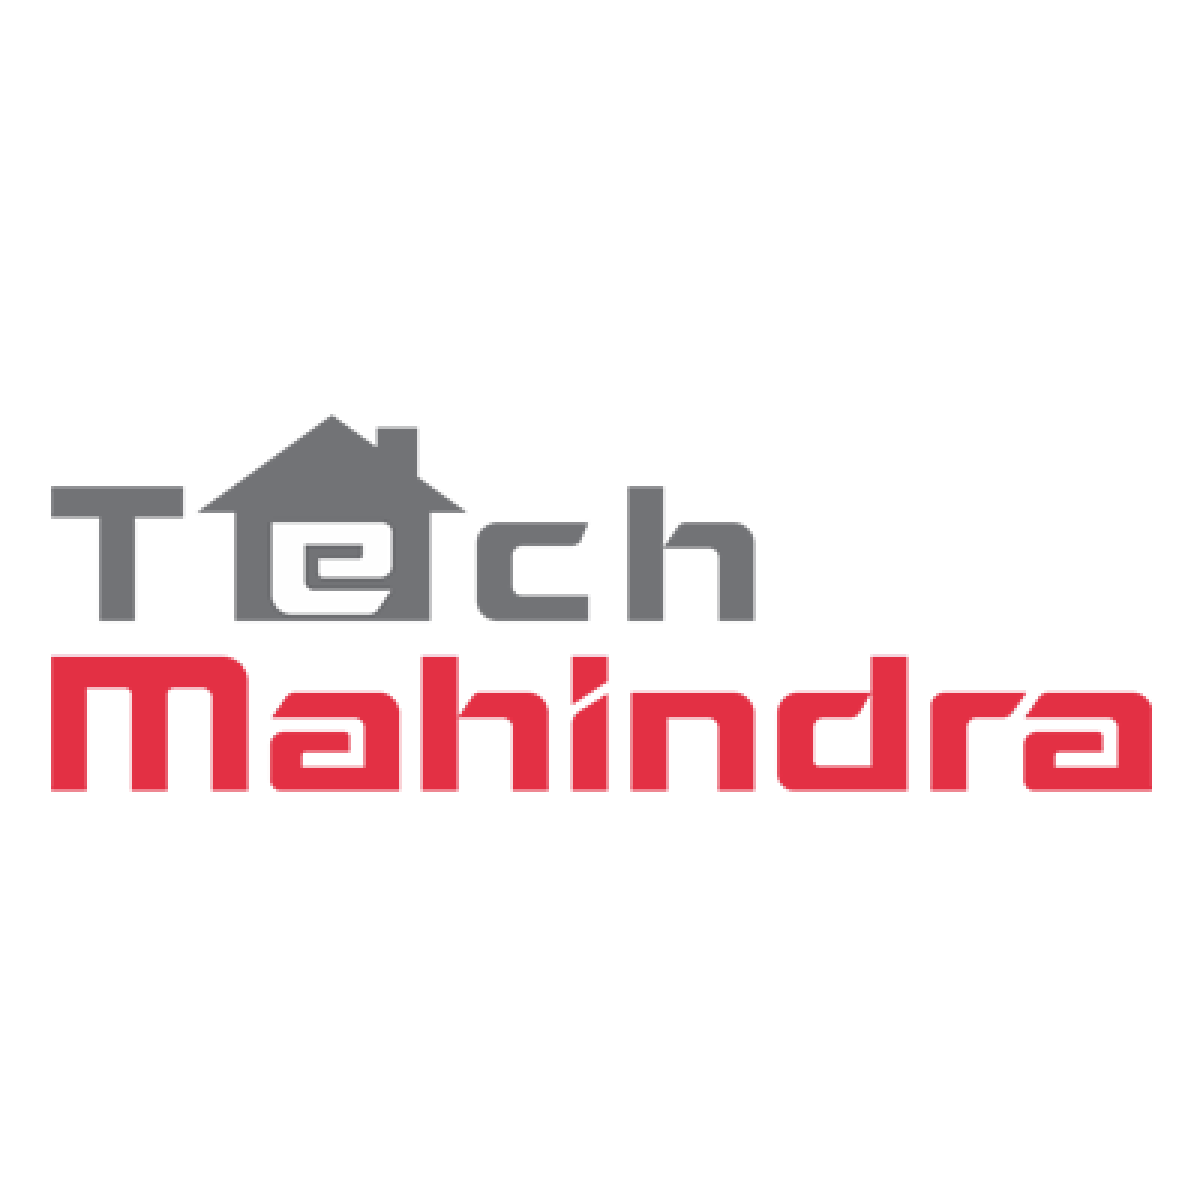 Pune Labour commissioner issues notice to Tech Mahindra; other IT firms on radar